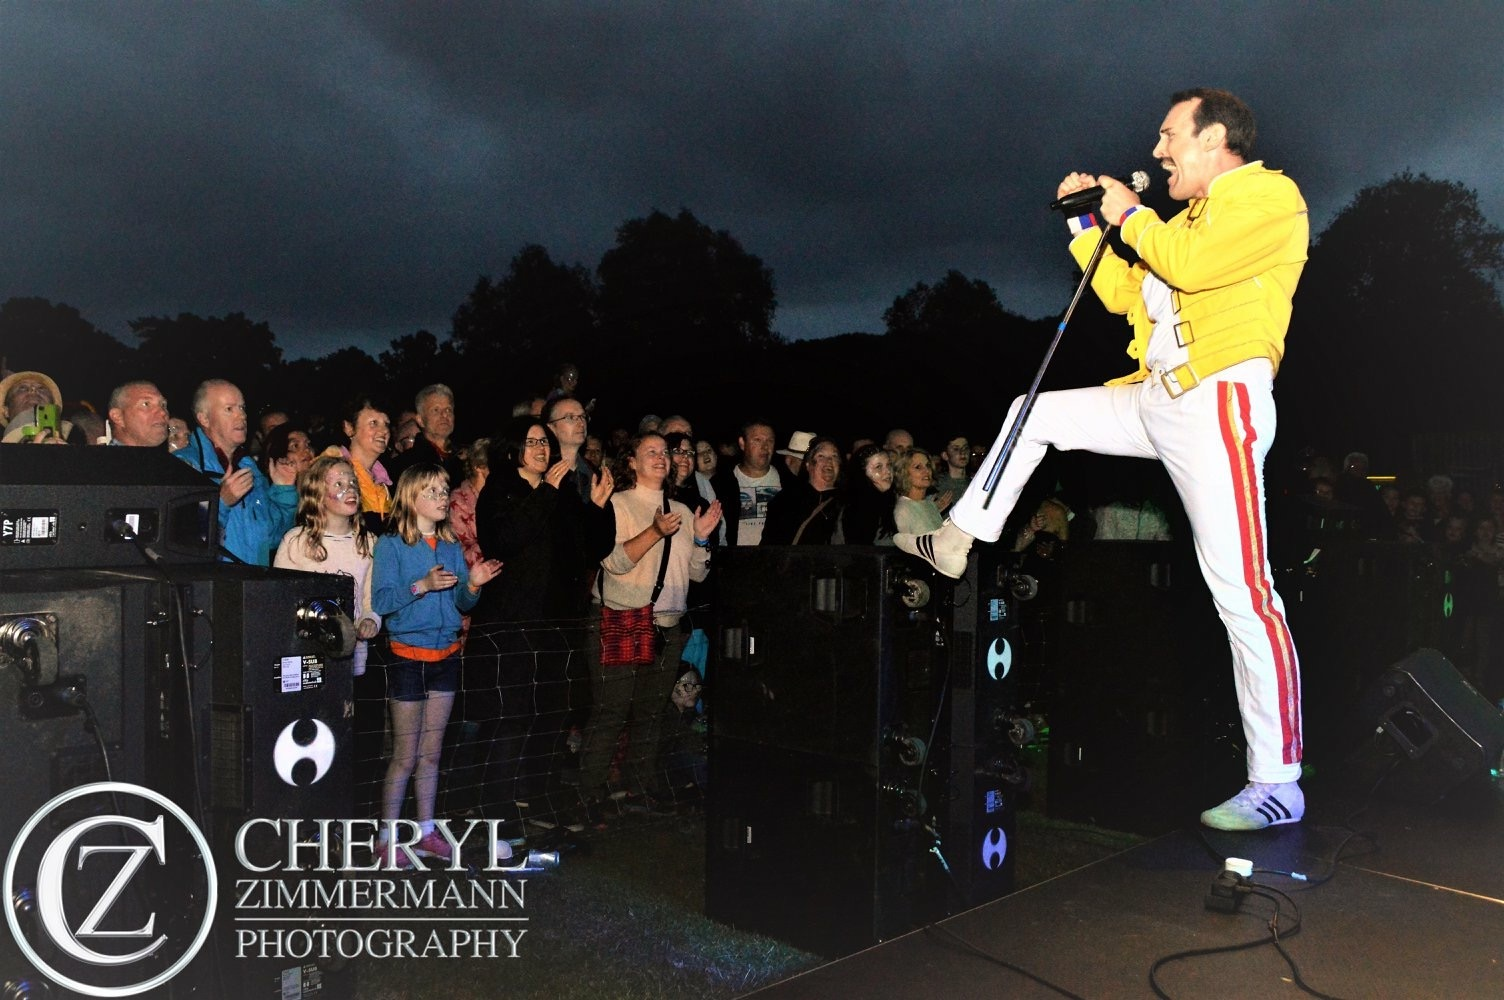 Queen Live At Wembley - Pure Queen Tribute Band